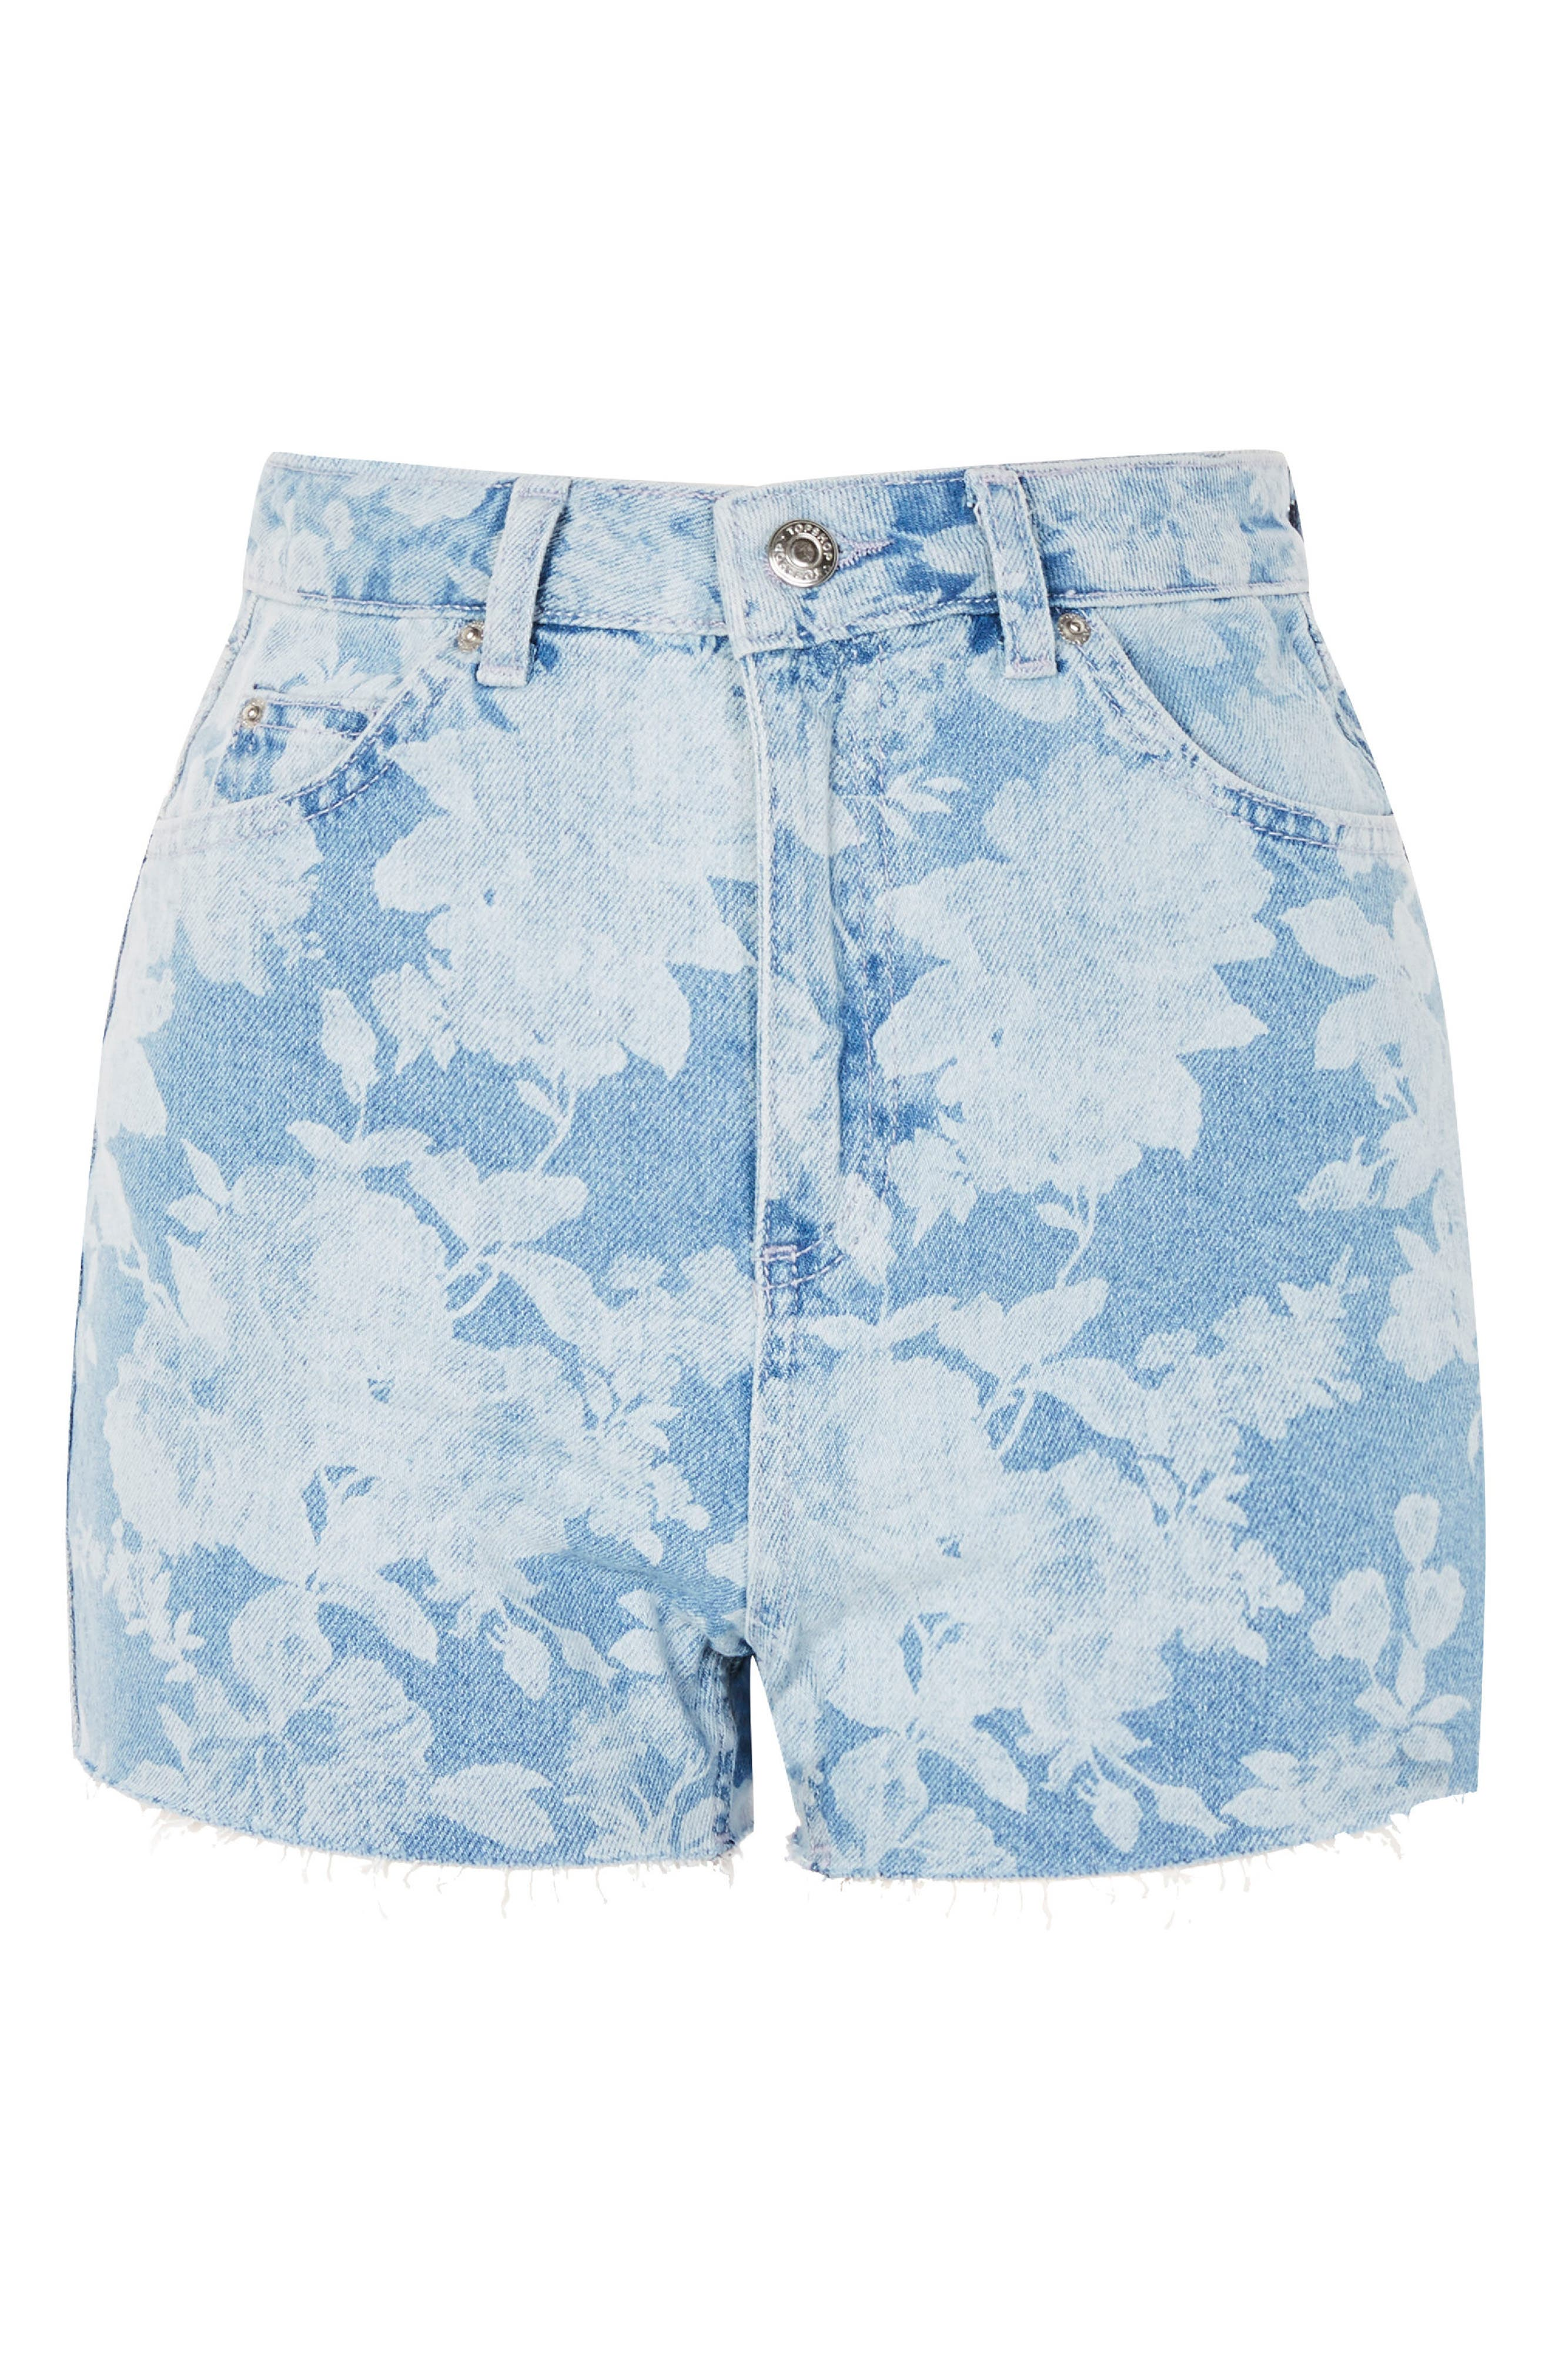 Floral Mom Shorts,                             Alternate thumbnail 3, color,